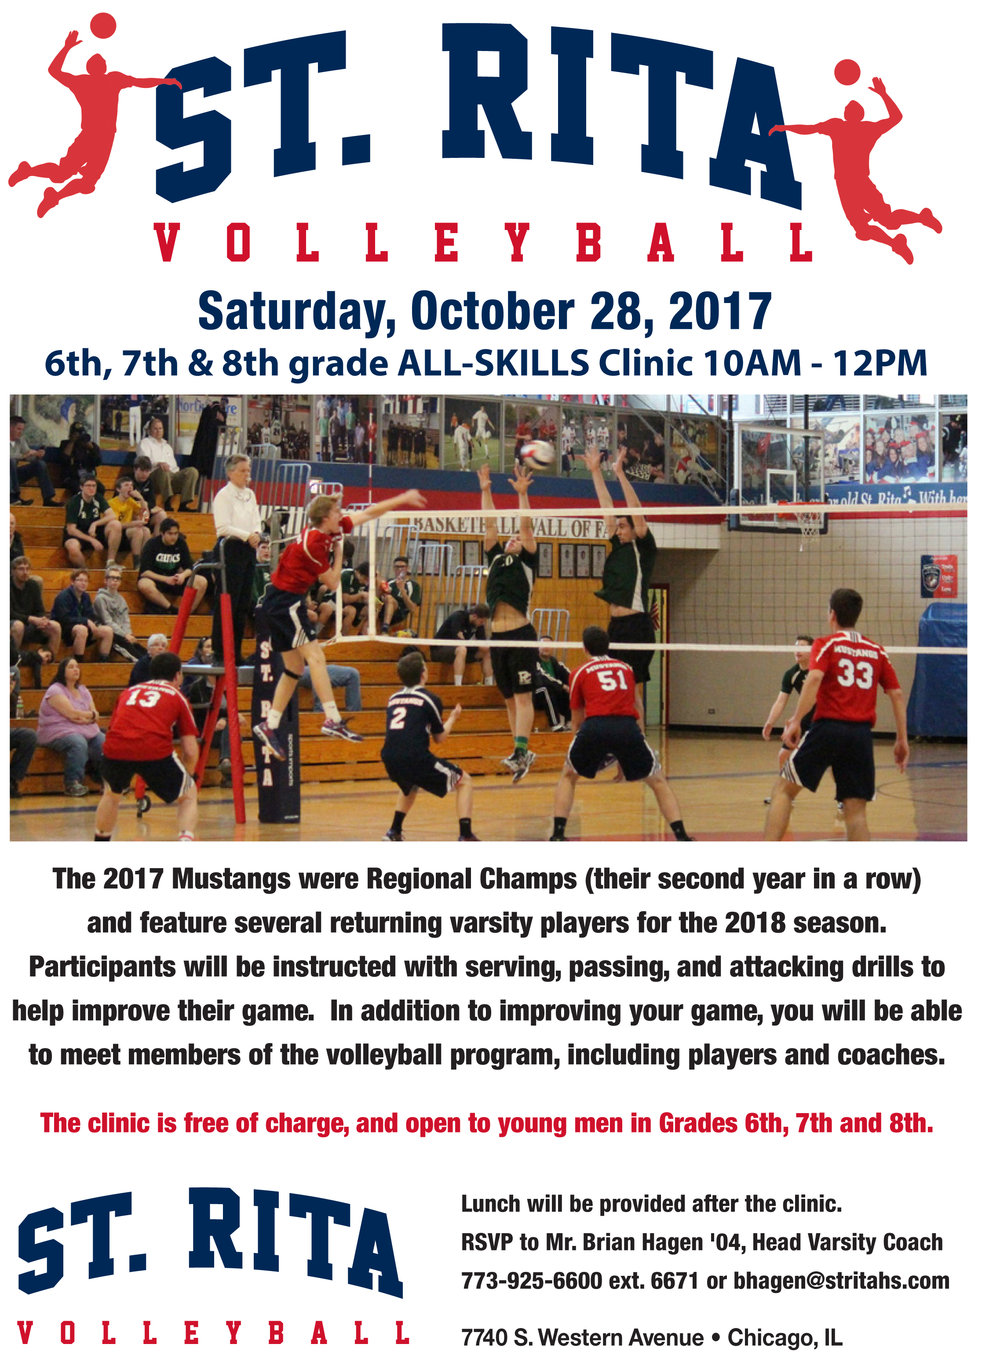 2017 Volleyball Clinic.jpg